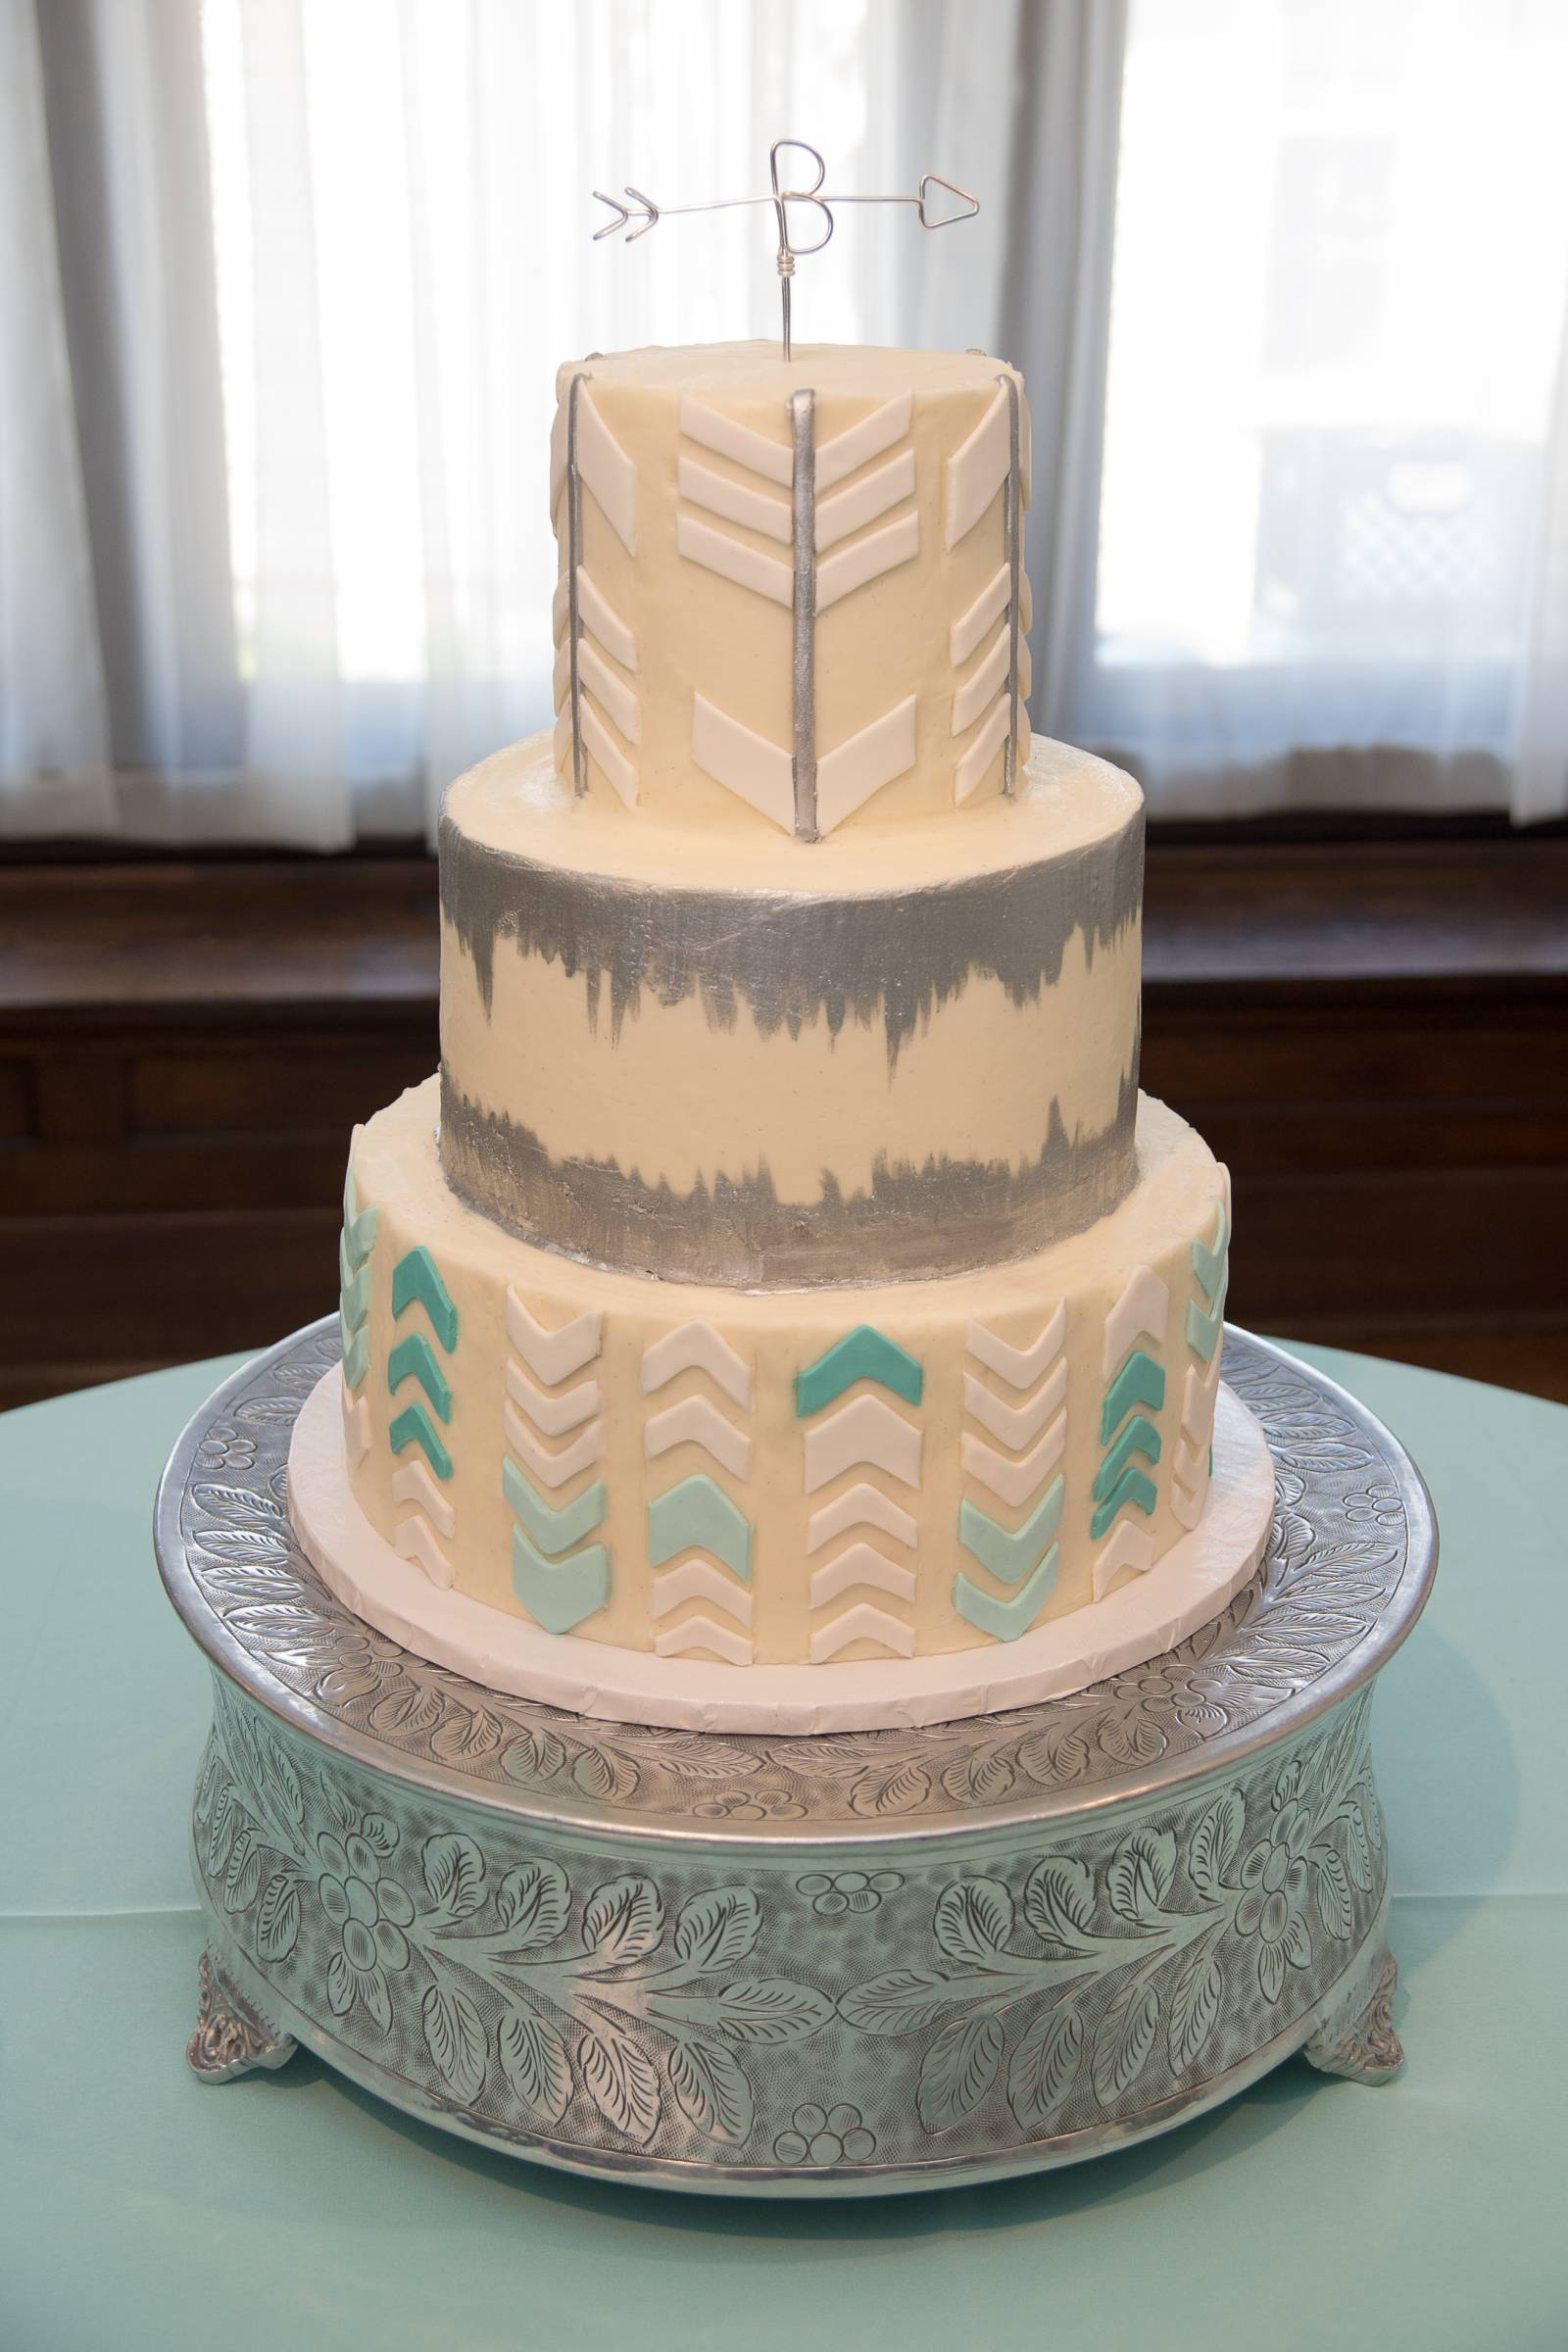 Meet Wolfe Gourmet Cakes: Gorgeous, Delicious Wedding Cakes in ...